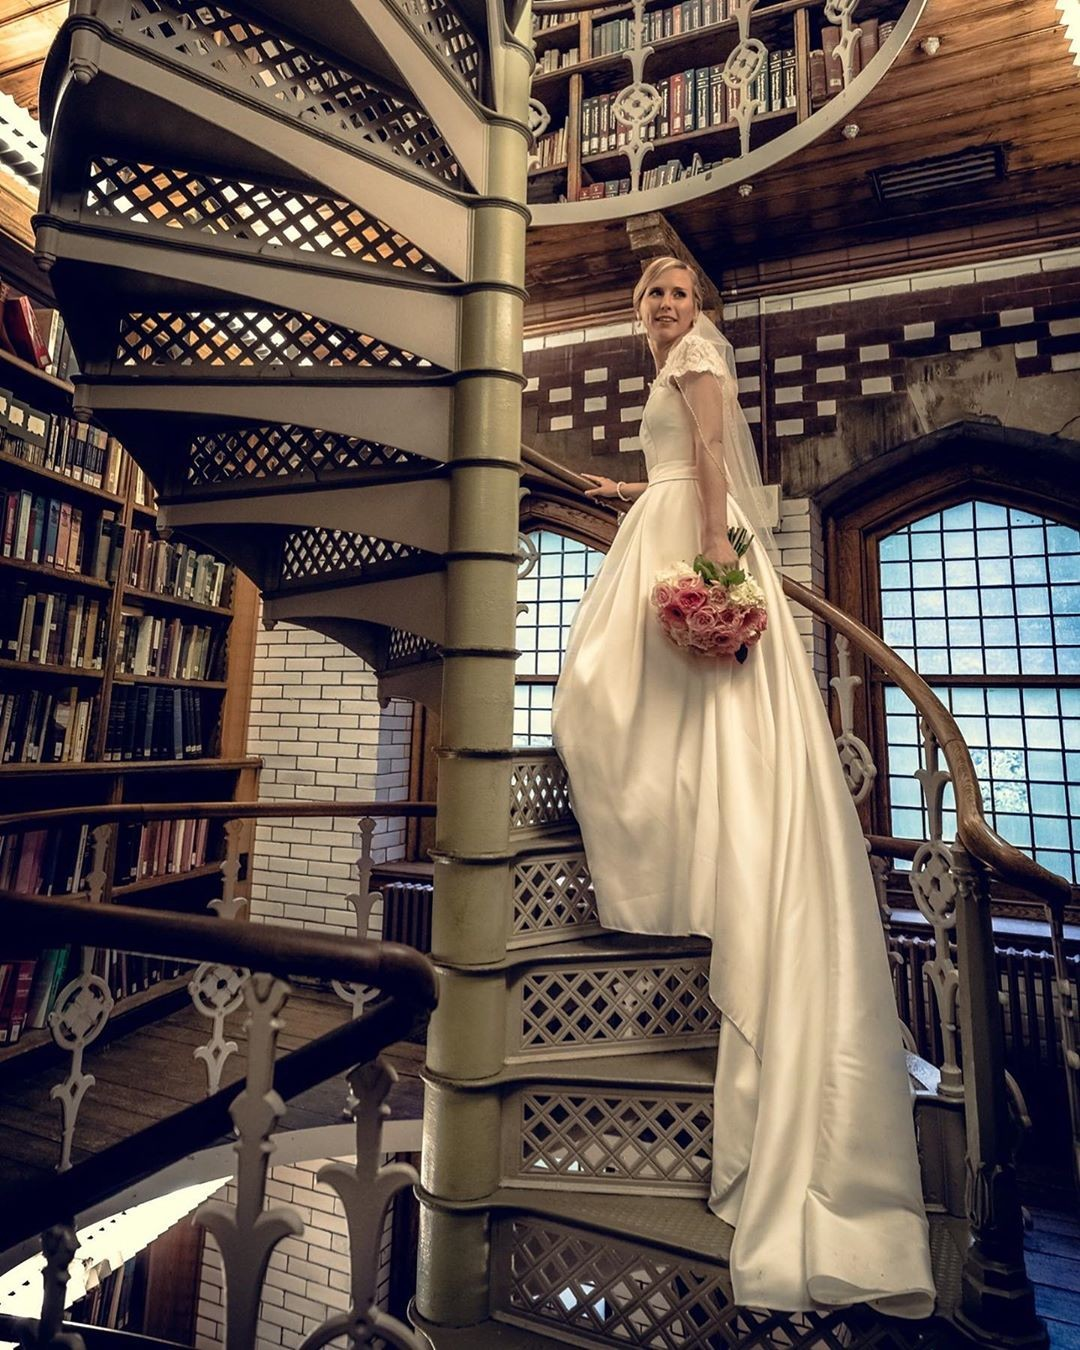 Love this spiral staircase at The Linderman Library at Lehigh University!